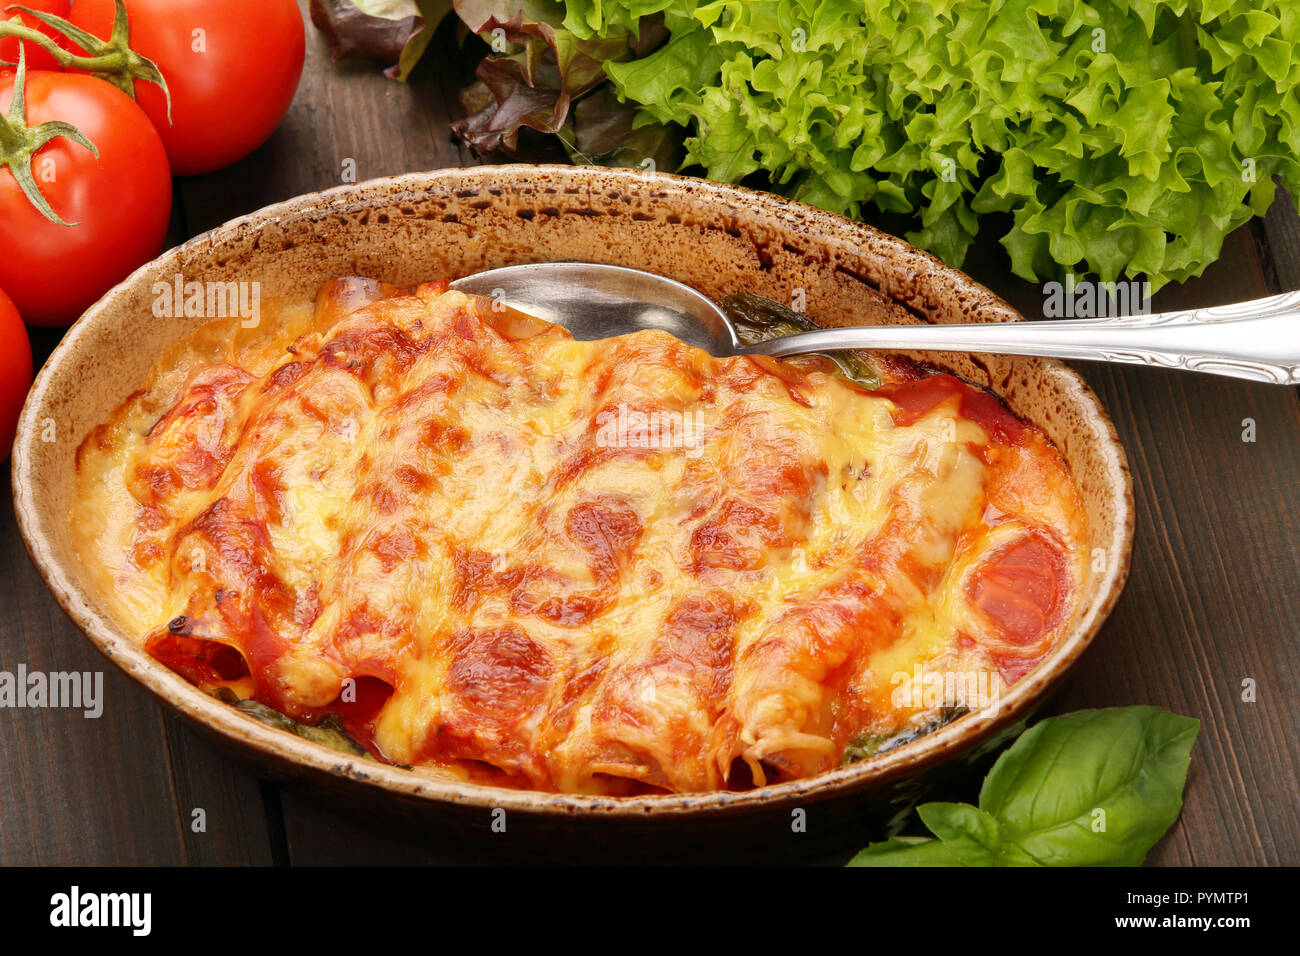 Caneloni stuffed with meat and melted cheese in brown bowl over grunge wood background Stock Photo